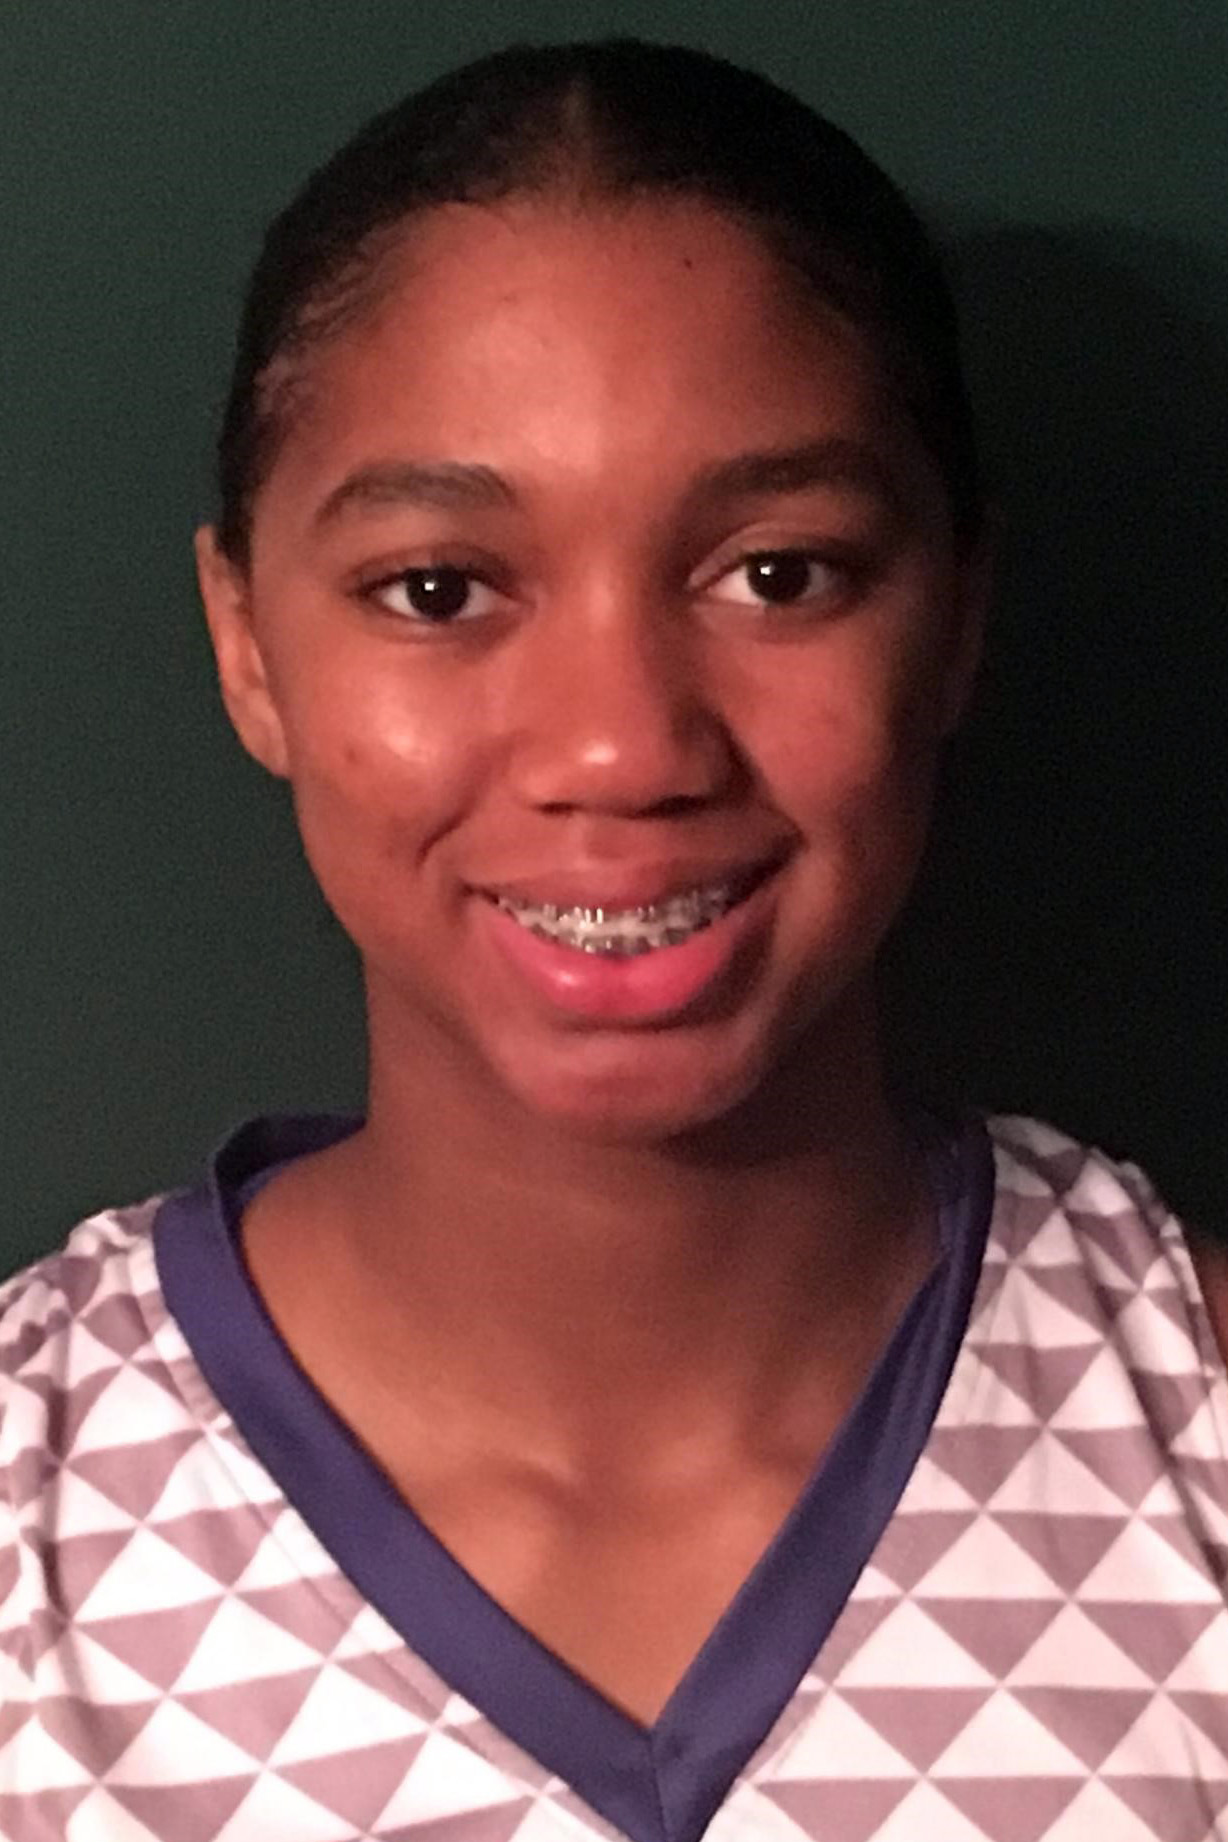 Sydney Bowles 2022 High School Girls' Basketball Profile - ESPN